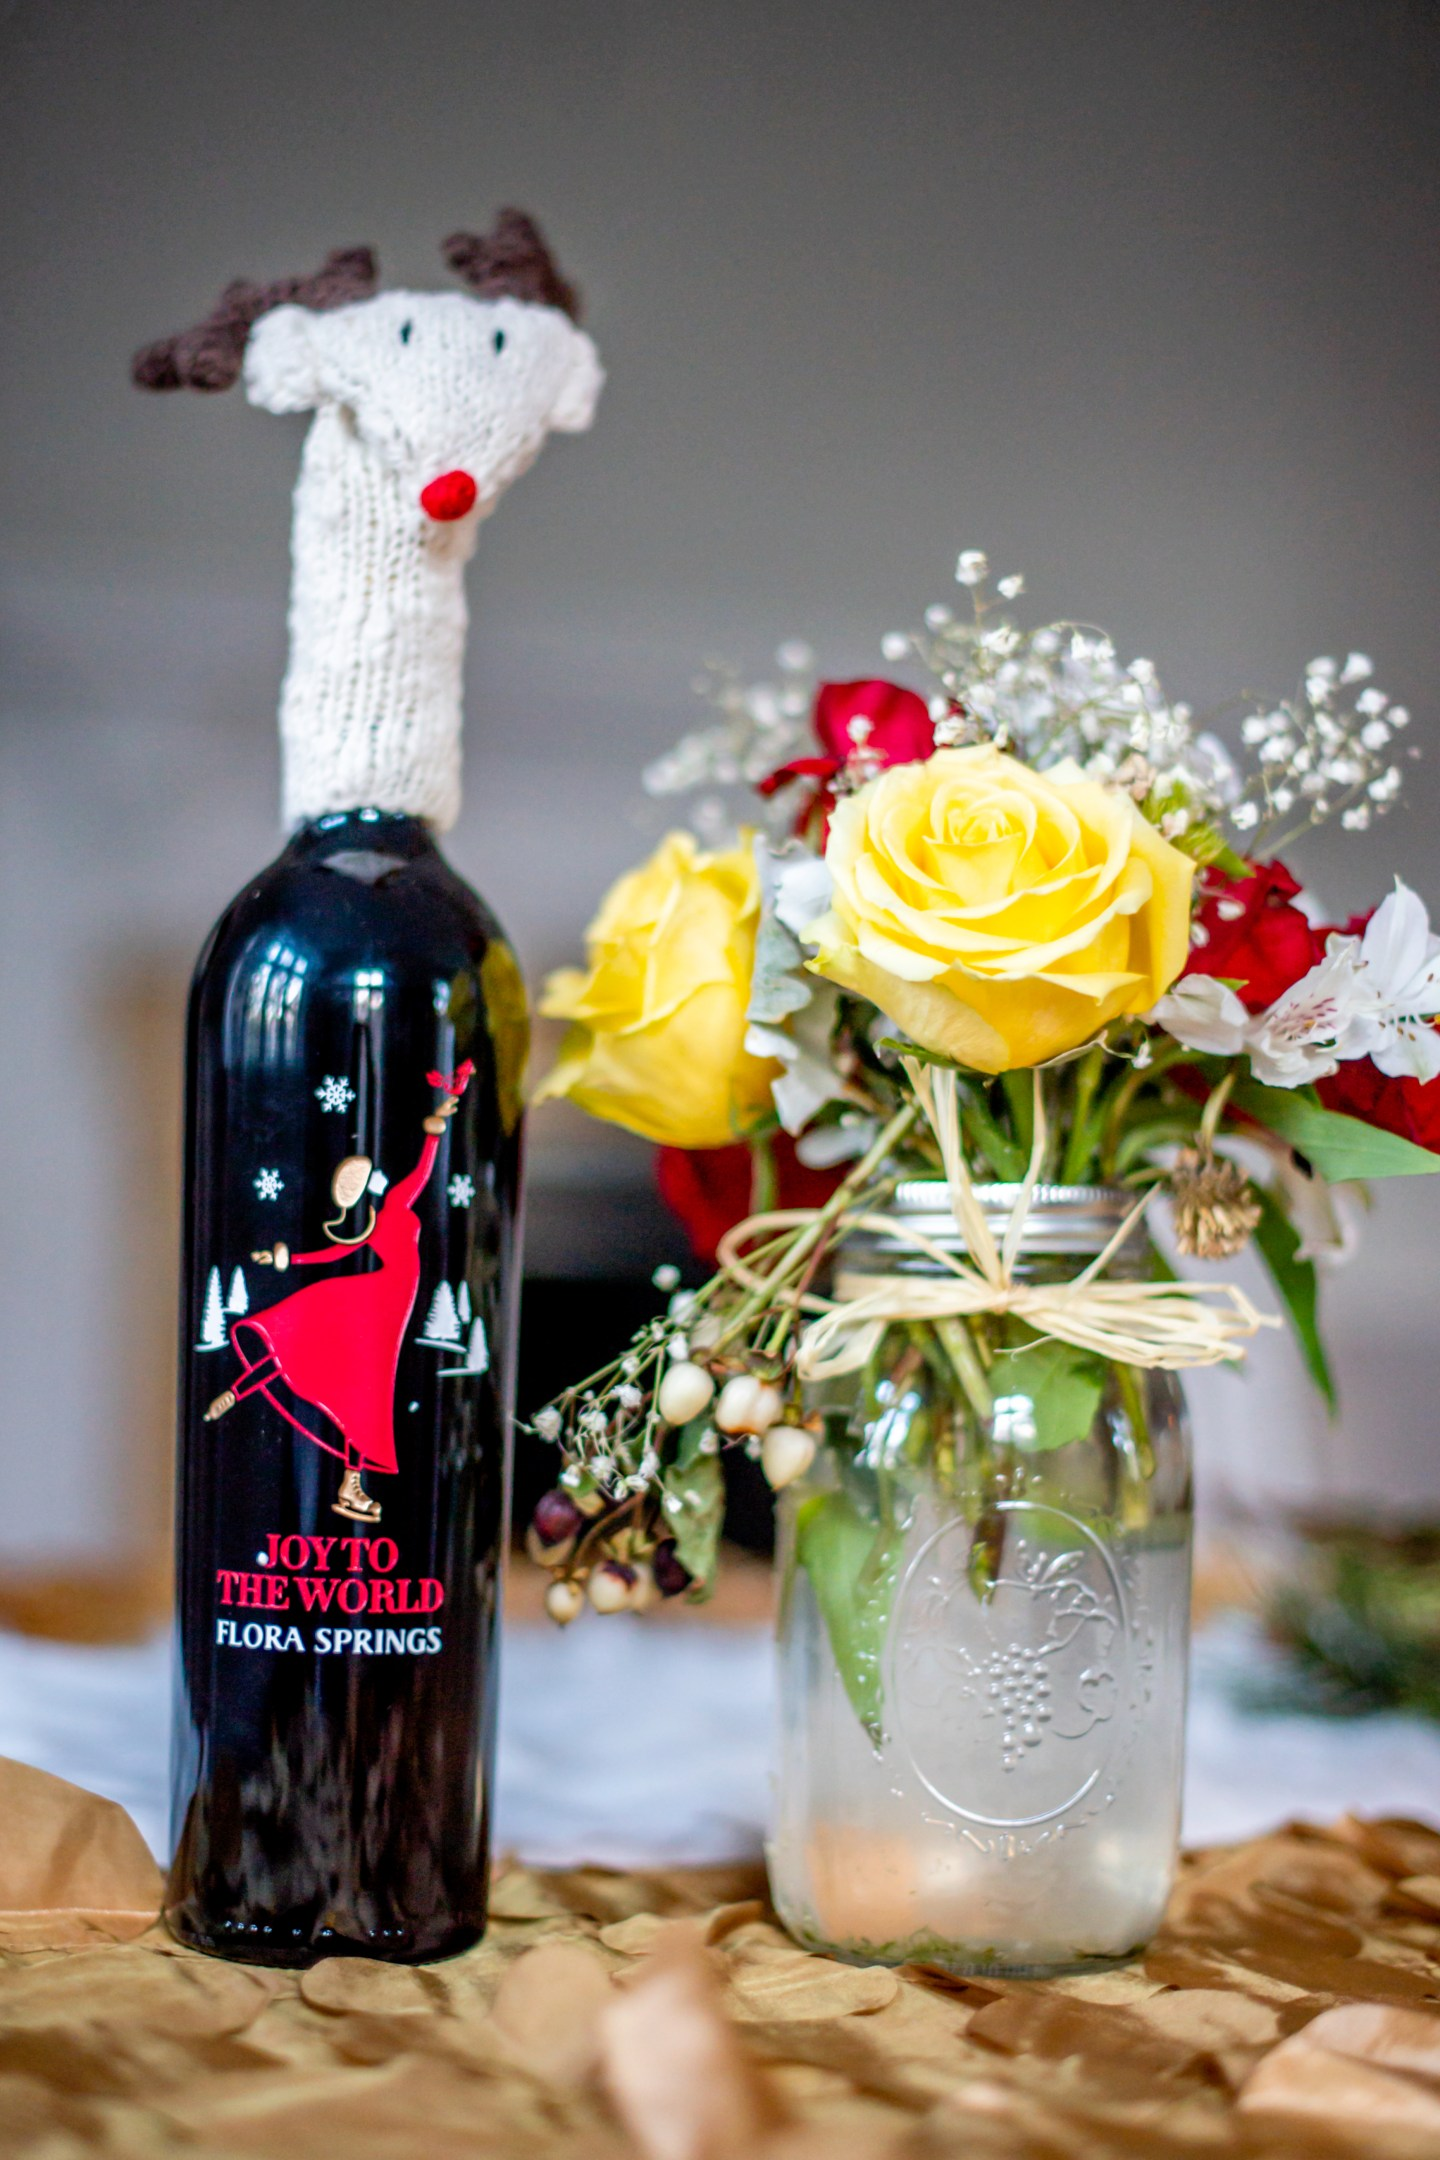 Flora Springs Holiday Wines